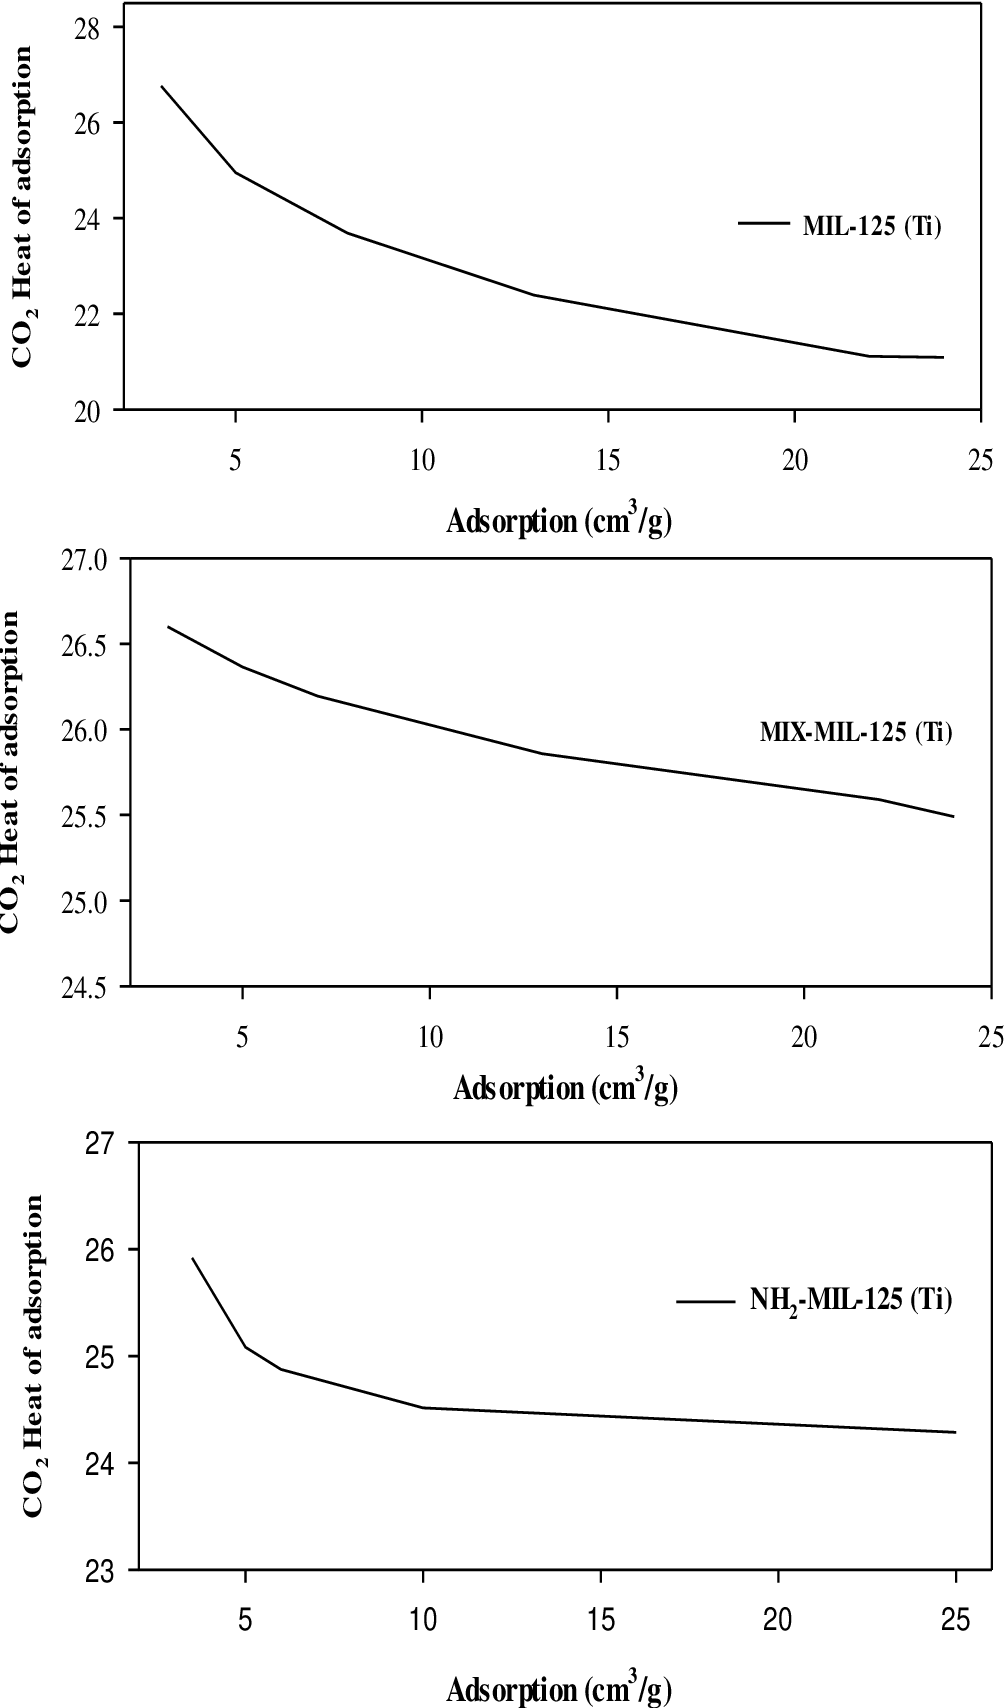 Figure 6 8 from Adsorption of gases (CO2, CH4) using novel